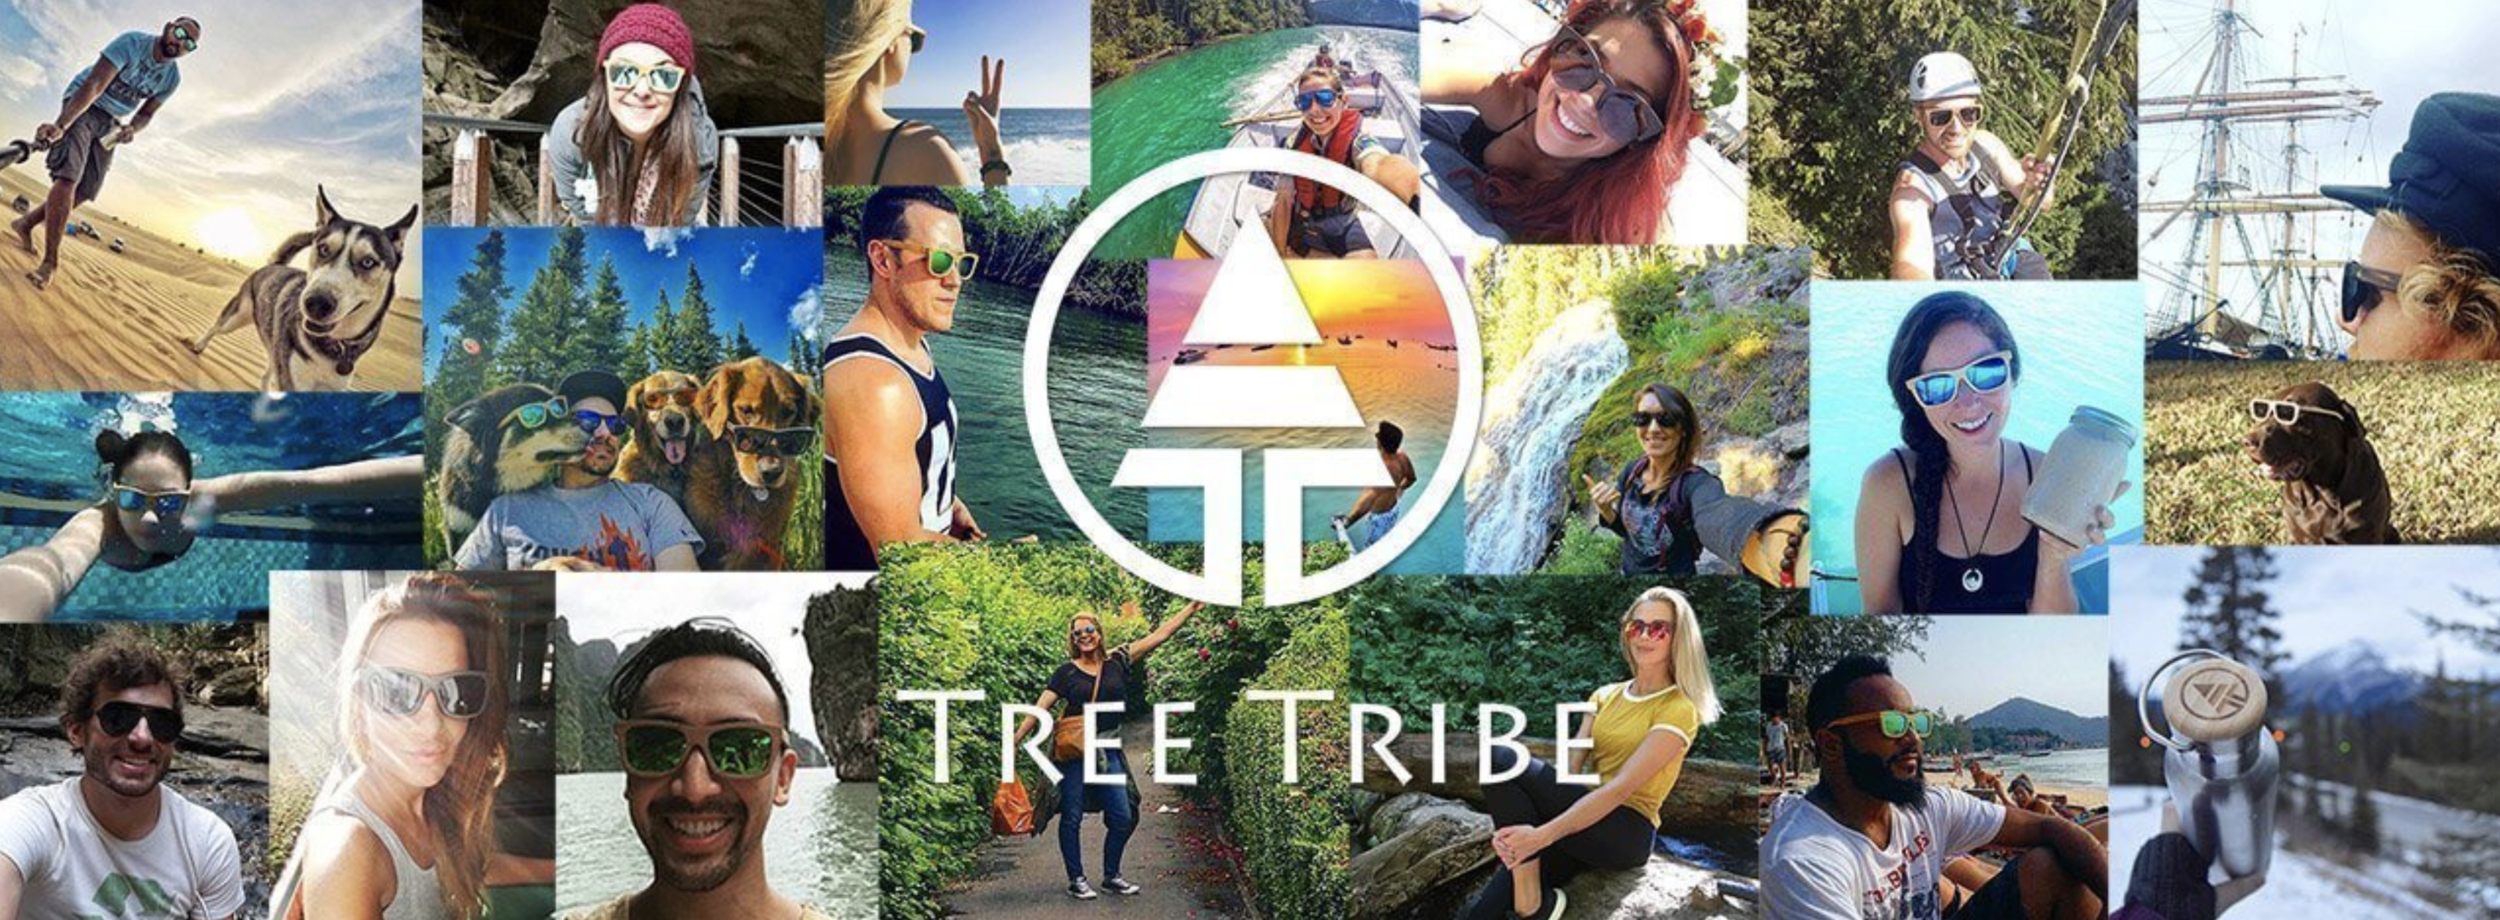 Cool Hiking Gear Tree Tribe